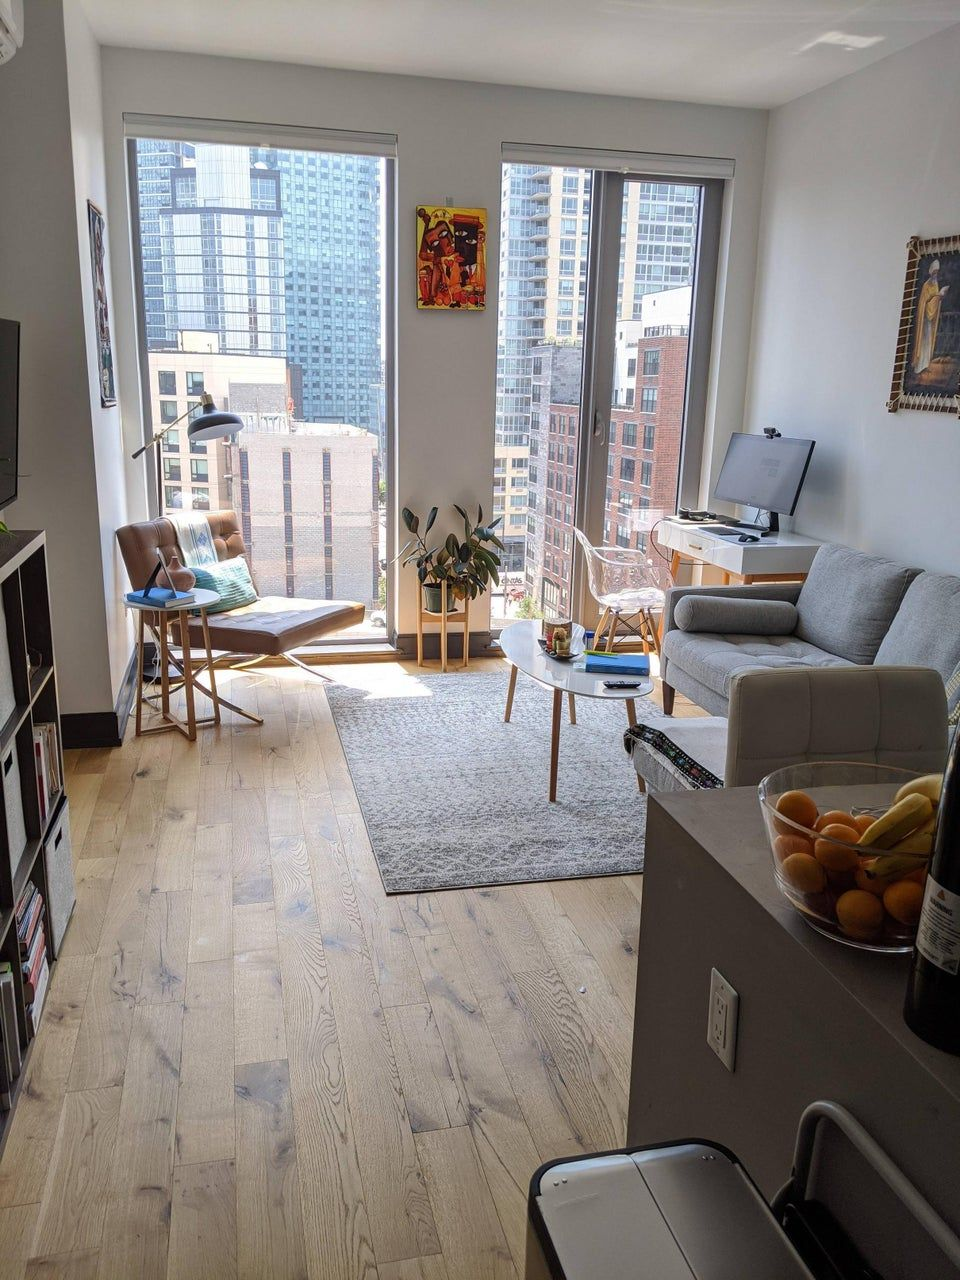 Reddit Amateurroomporn Nyc Living Room In 2021 Nyc Apartment Decorating Apartment Living Room Layout Small Apartment Living Living room ideas reddit